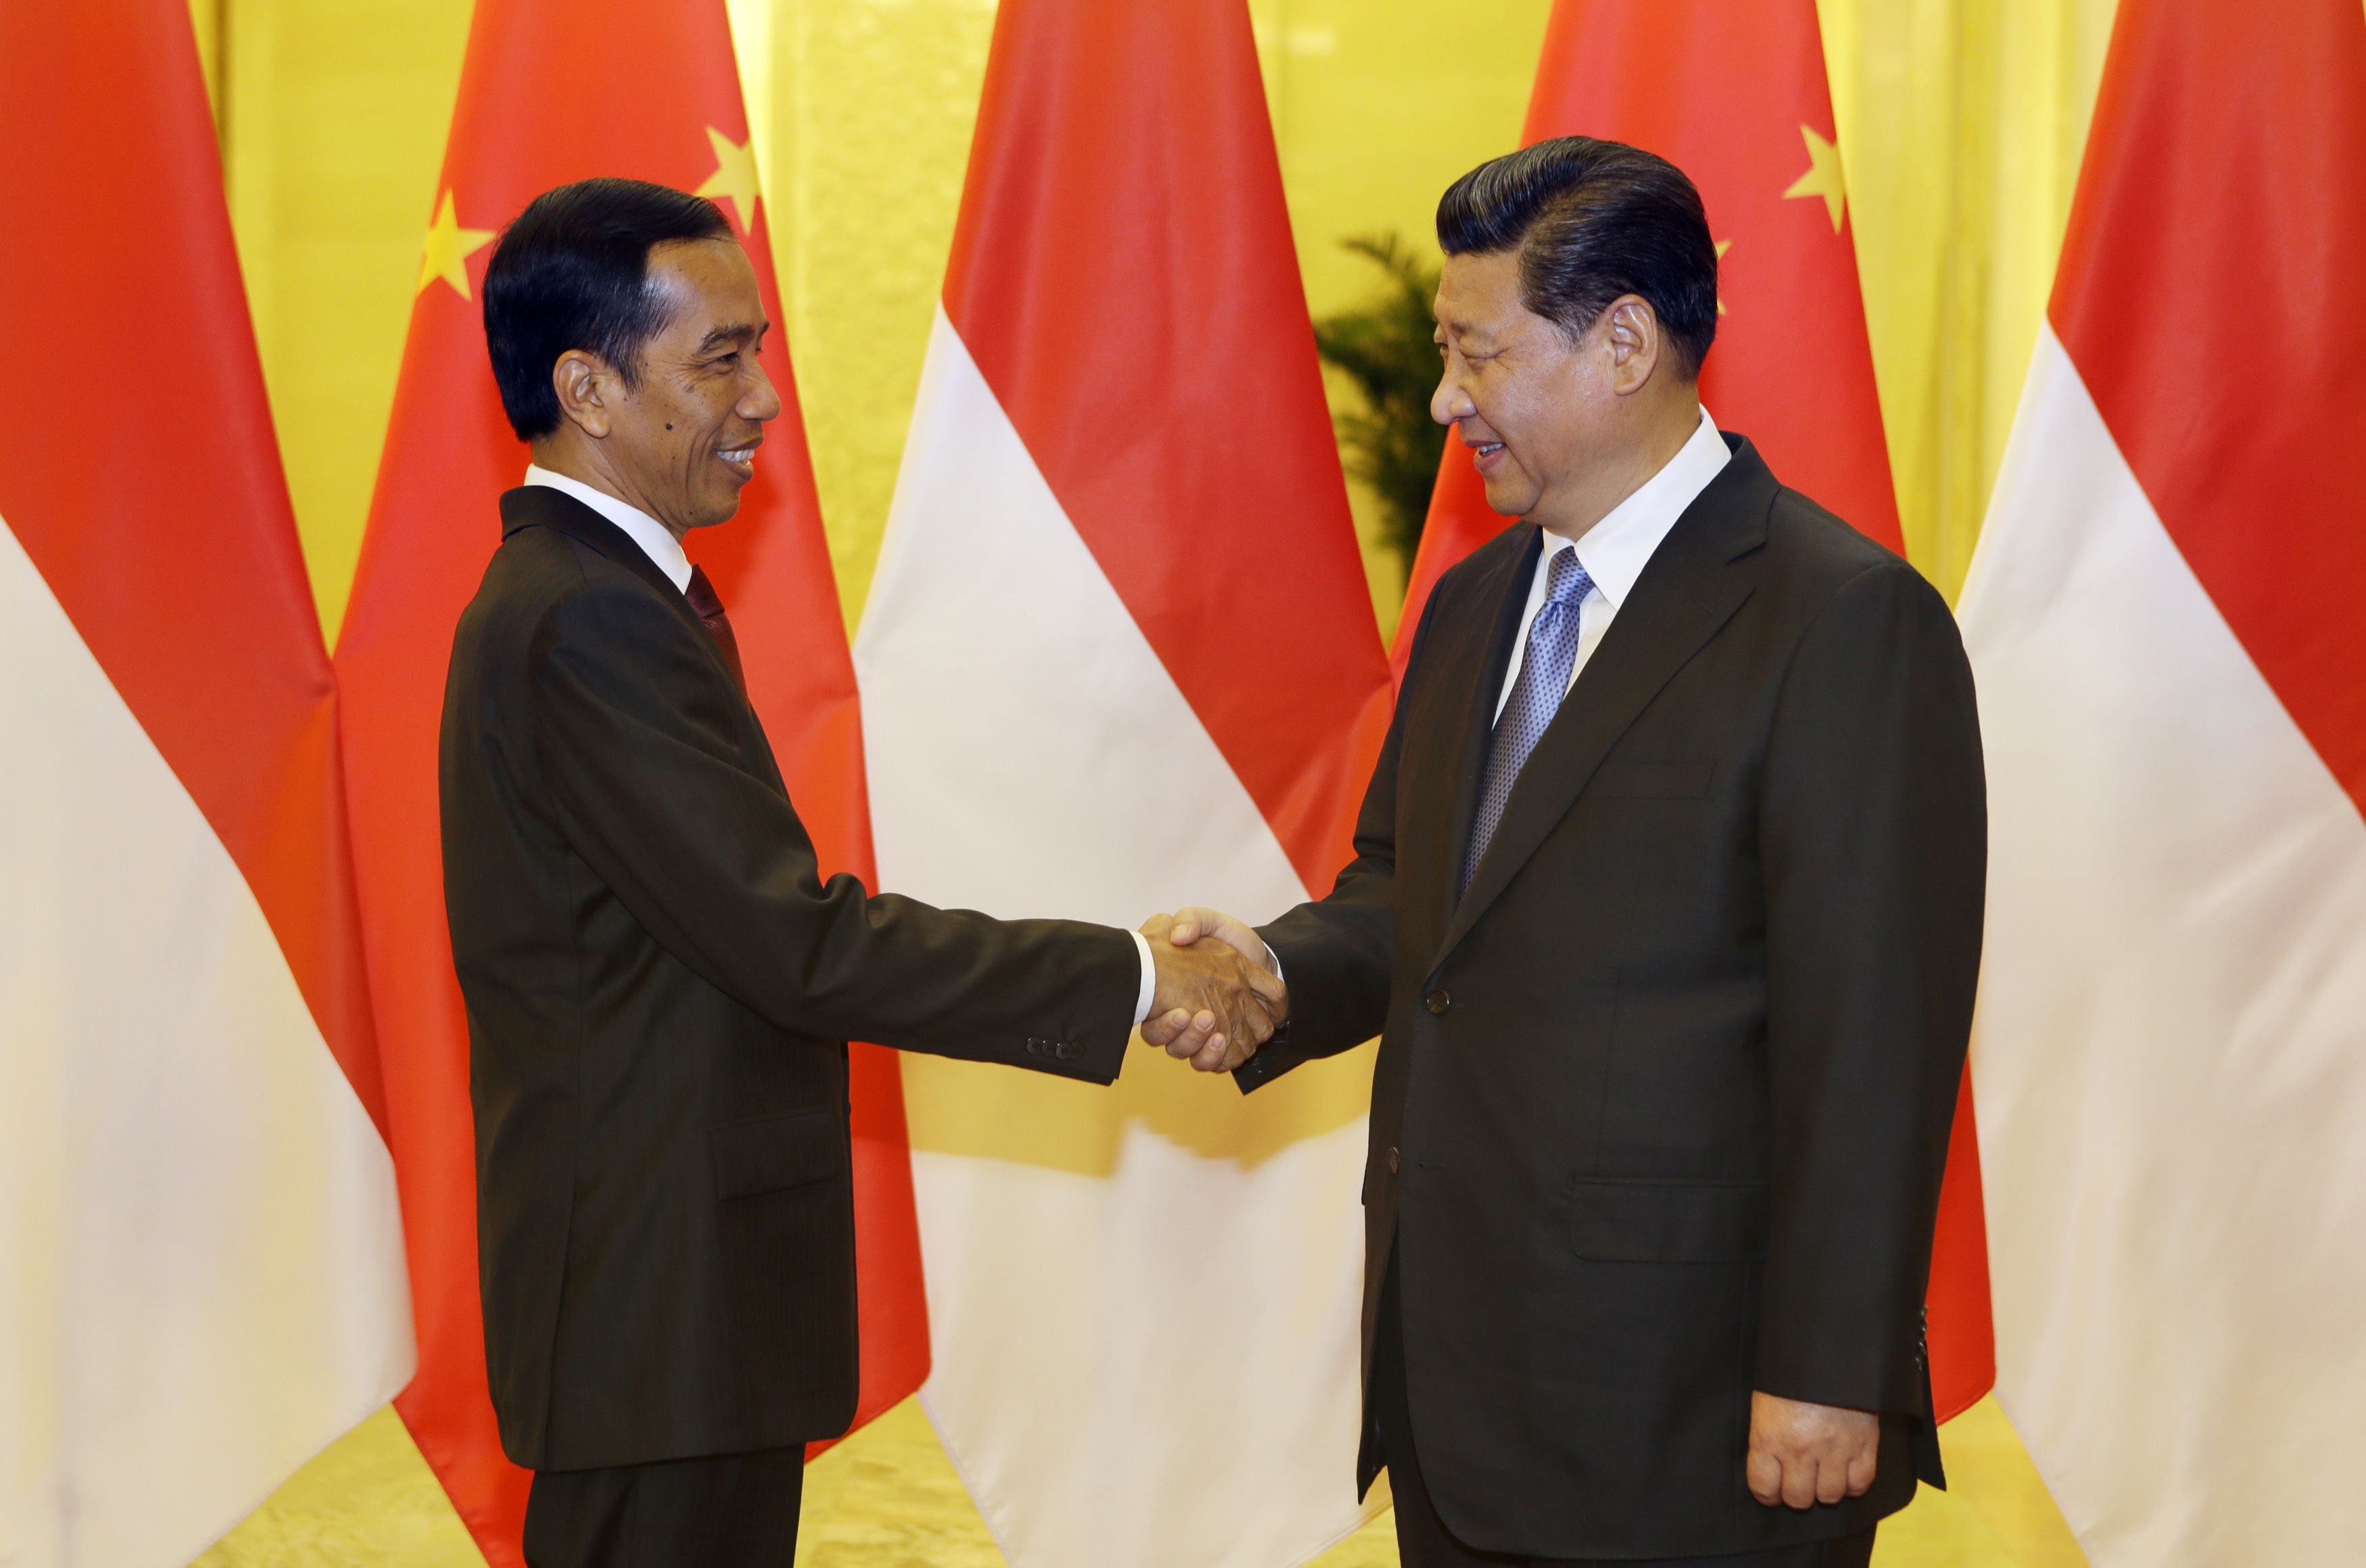 Indonesia's President Joko Widodo (L) shakes hands with China's President Xi Jinping before their meeting at the Great Hall of the People in Beijing on November 9, 2014. The Indonesian leader is in the Chinese capital to attend the Asia-Pacific Economic Cooperation (APEC) Summit leaders' meeting. AFP PHOTO / POOL / Jason Lee